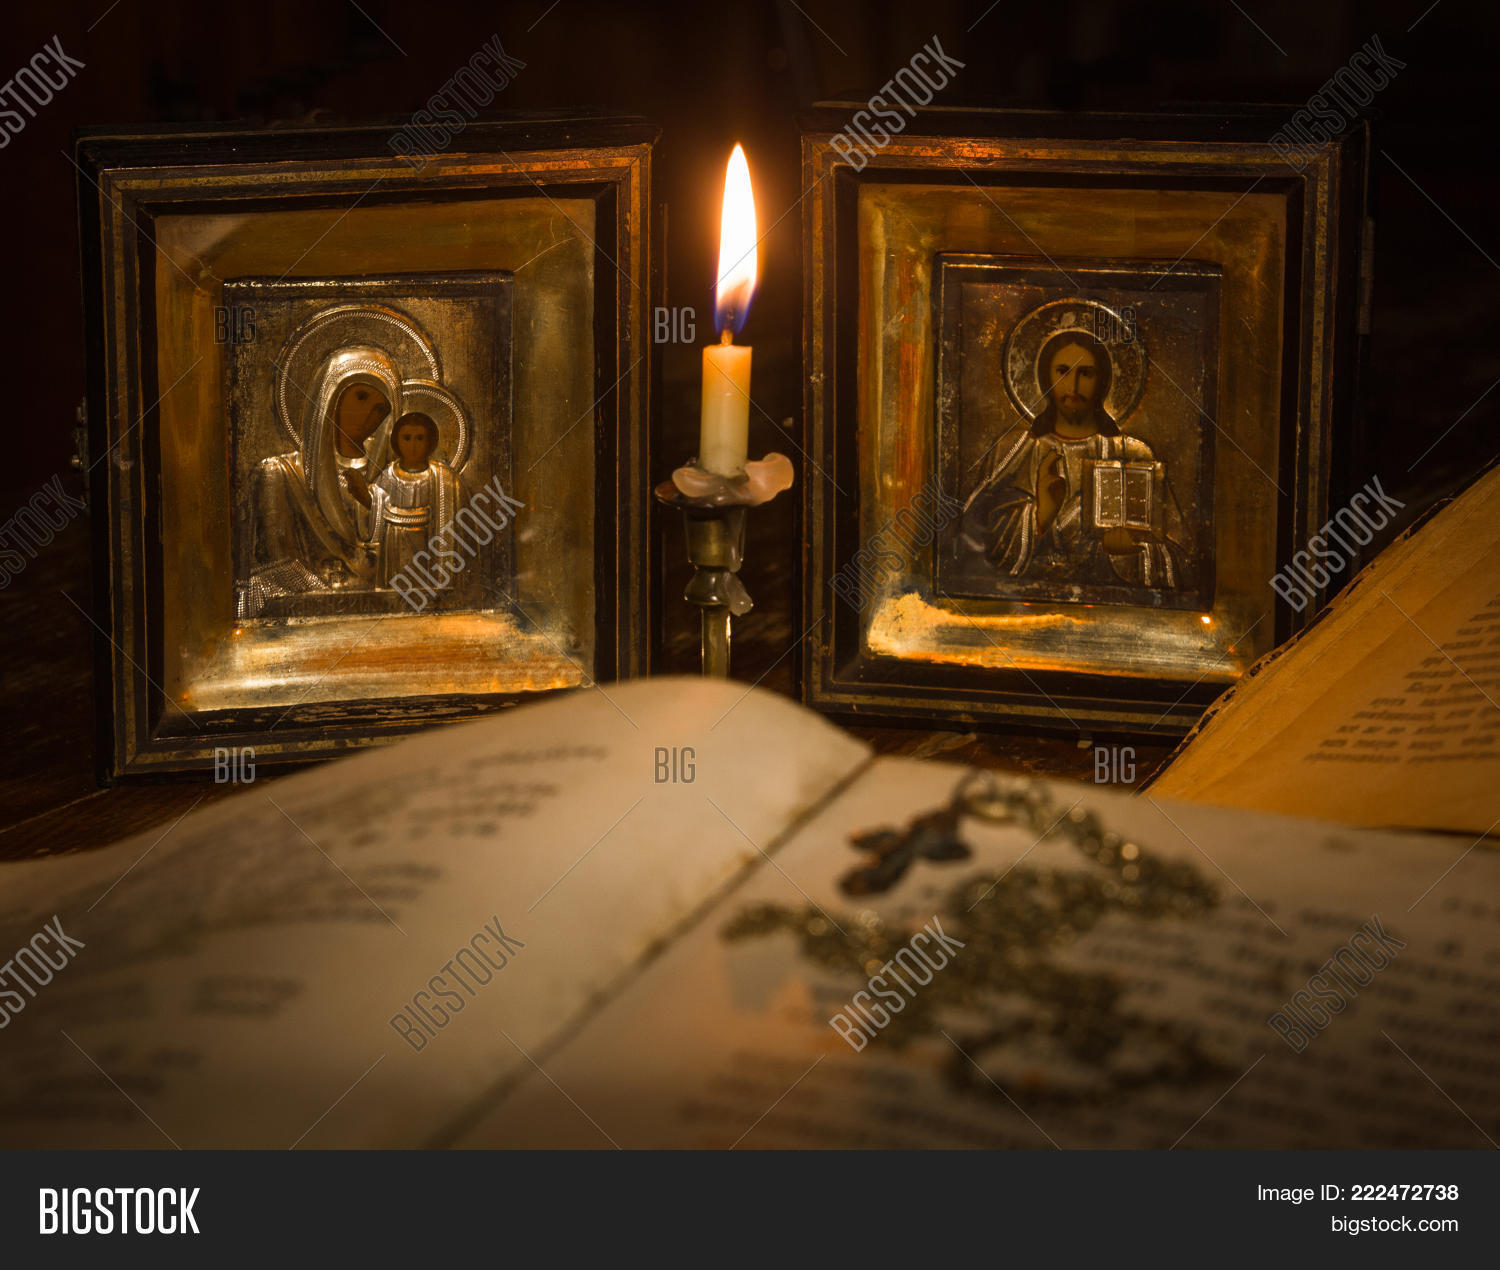 Easter,antique,art,background,bible,book,candle,catholic,chain,christ,christian,church,cross,detail,faith,figure,fire,god,golden,greece,greek,heavenandhell,holy,icon,iconography,jesus,light,mary,mother,motherofgod,object,old,open,orthodox,outdoor,paint,picture,prayer,red,religion,religious,religiousicon,sacred,saint,spiritual,symbol,text,virgin,virginmary